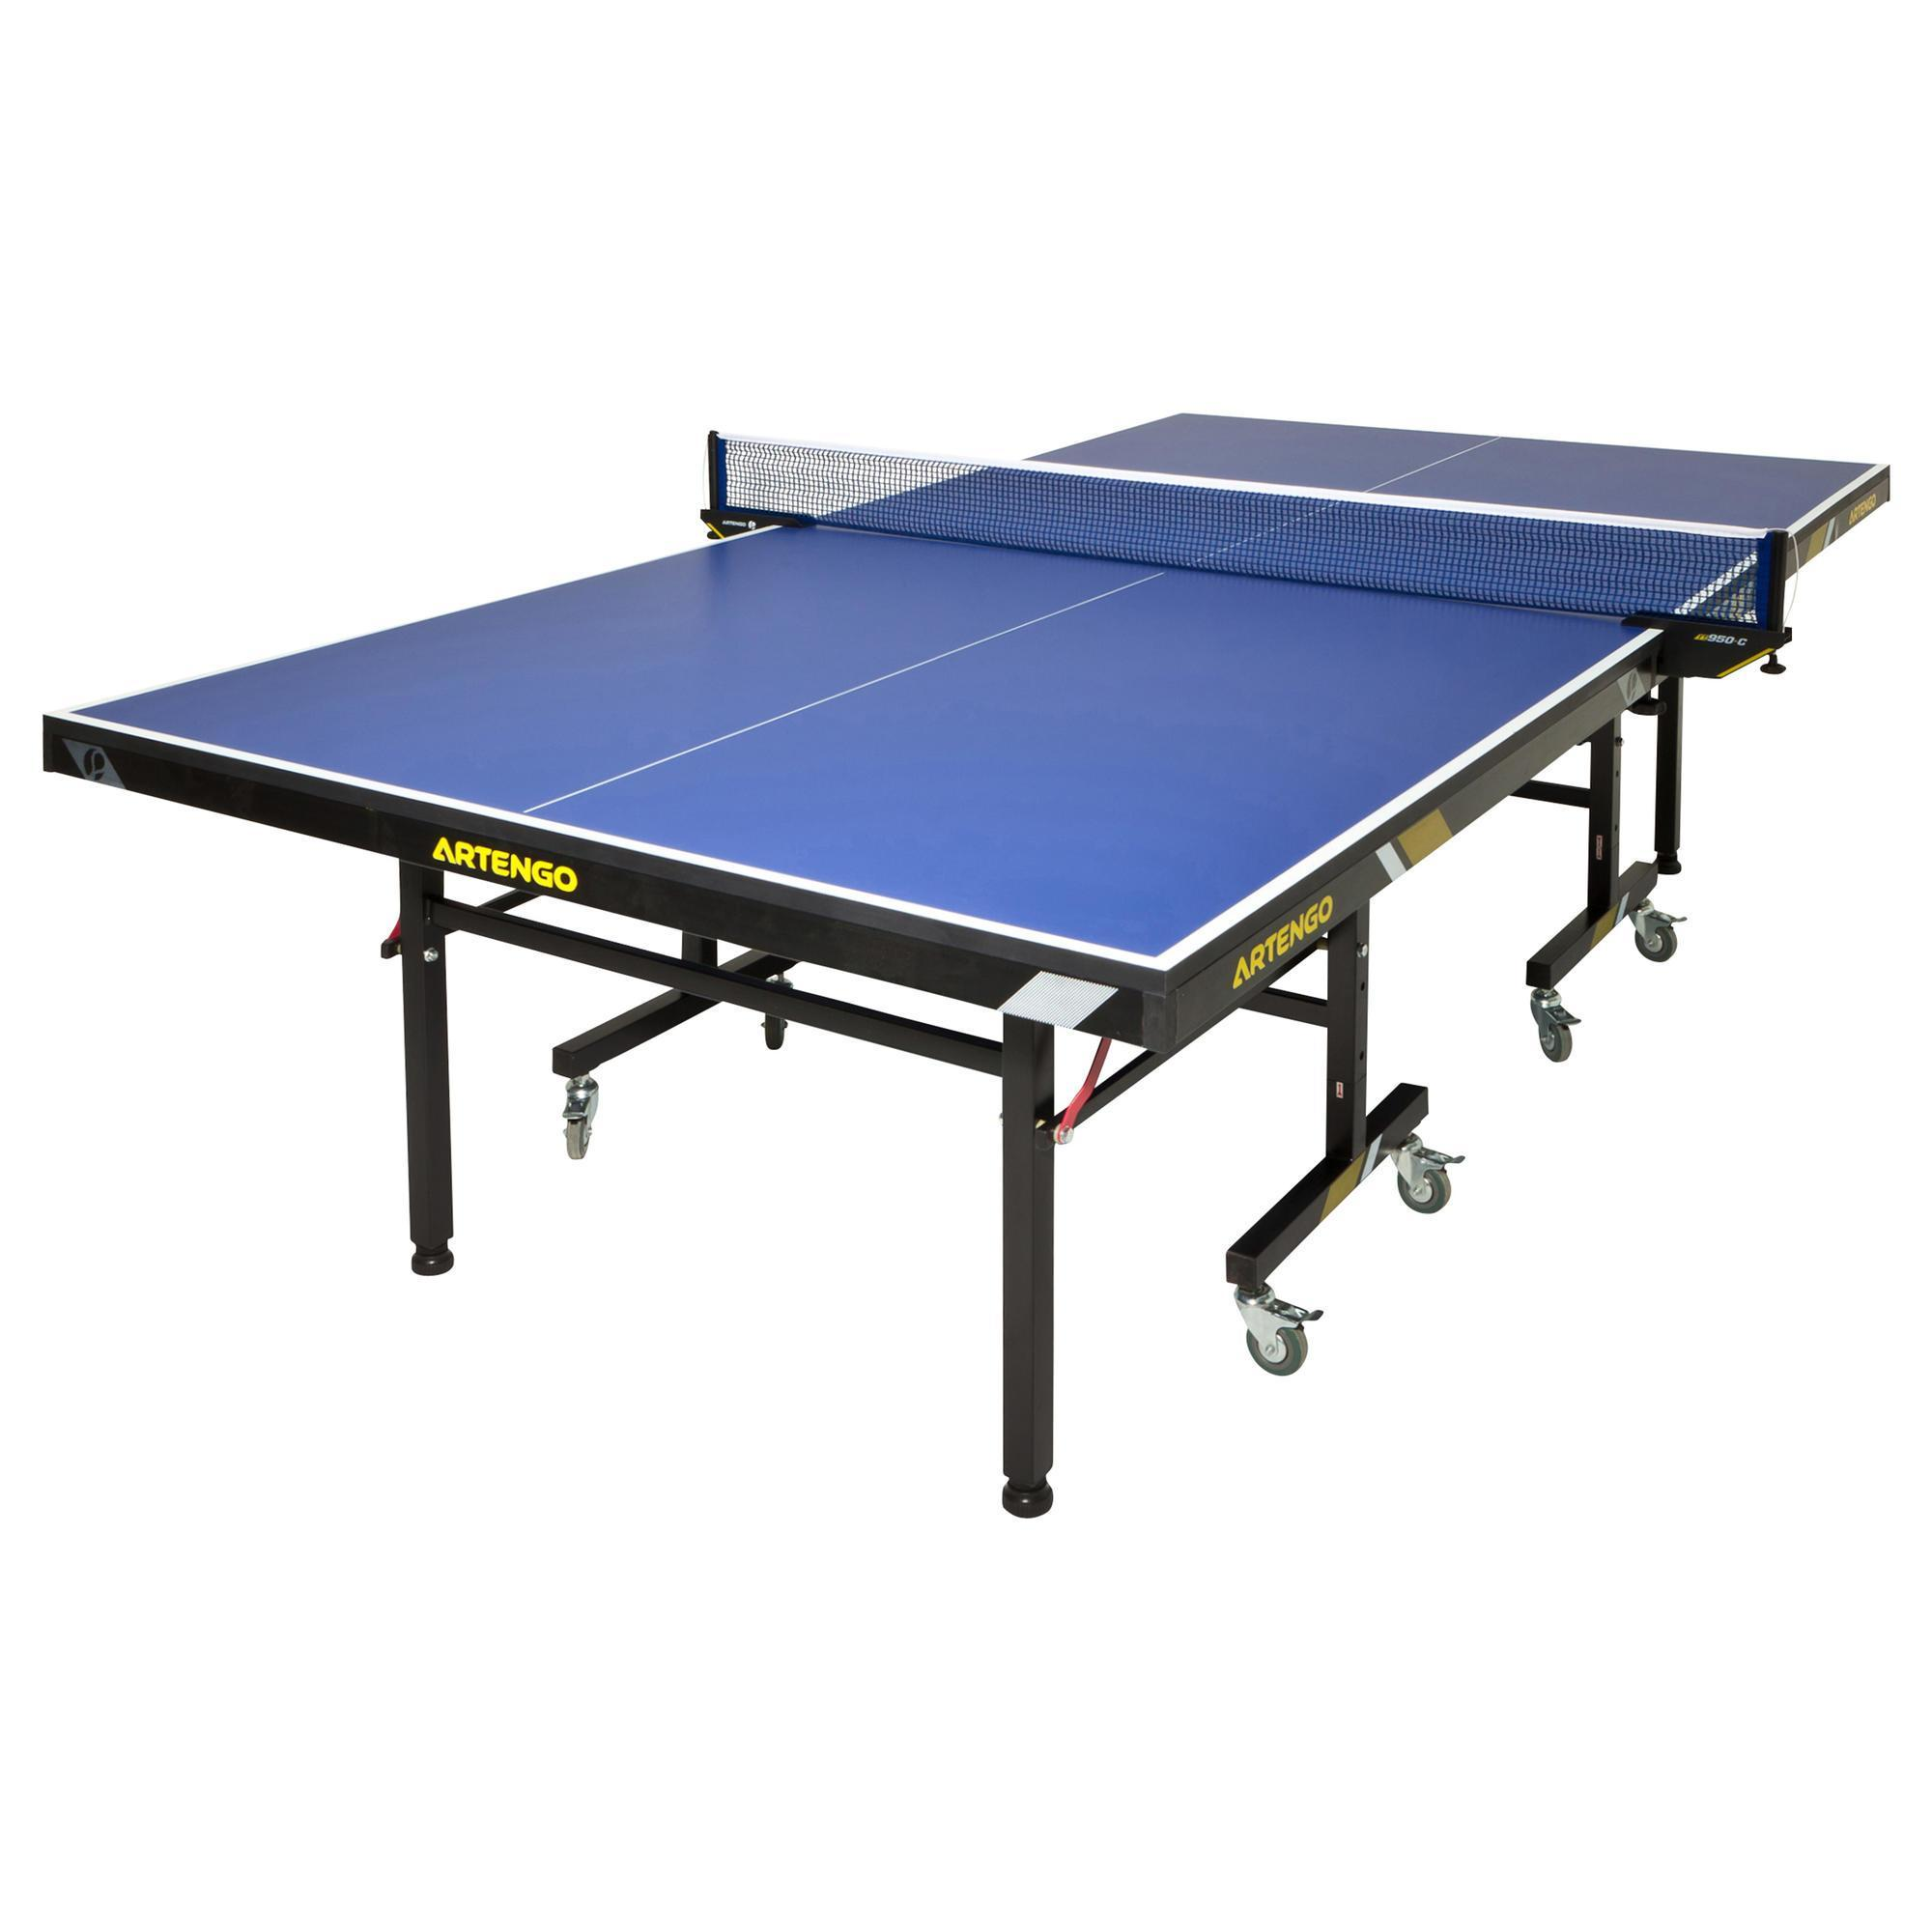 Solde Table De Ping Pong Ft950 Club Fftt Approved Table Tennis Table Blue Artengo